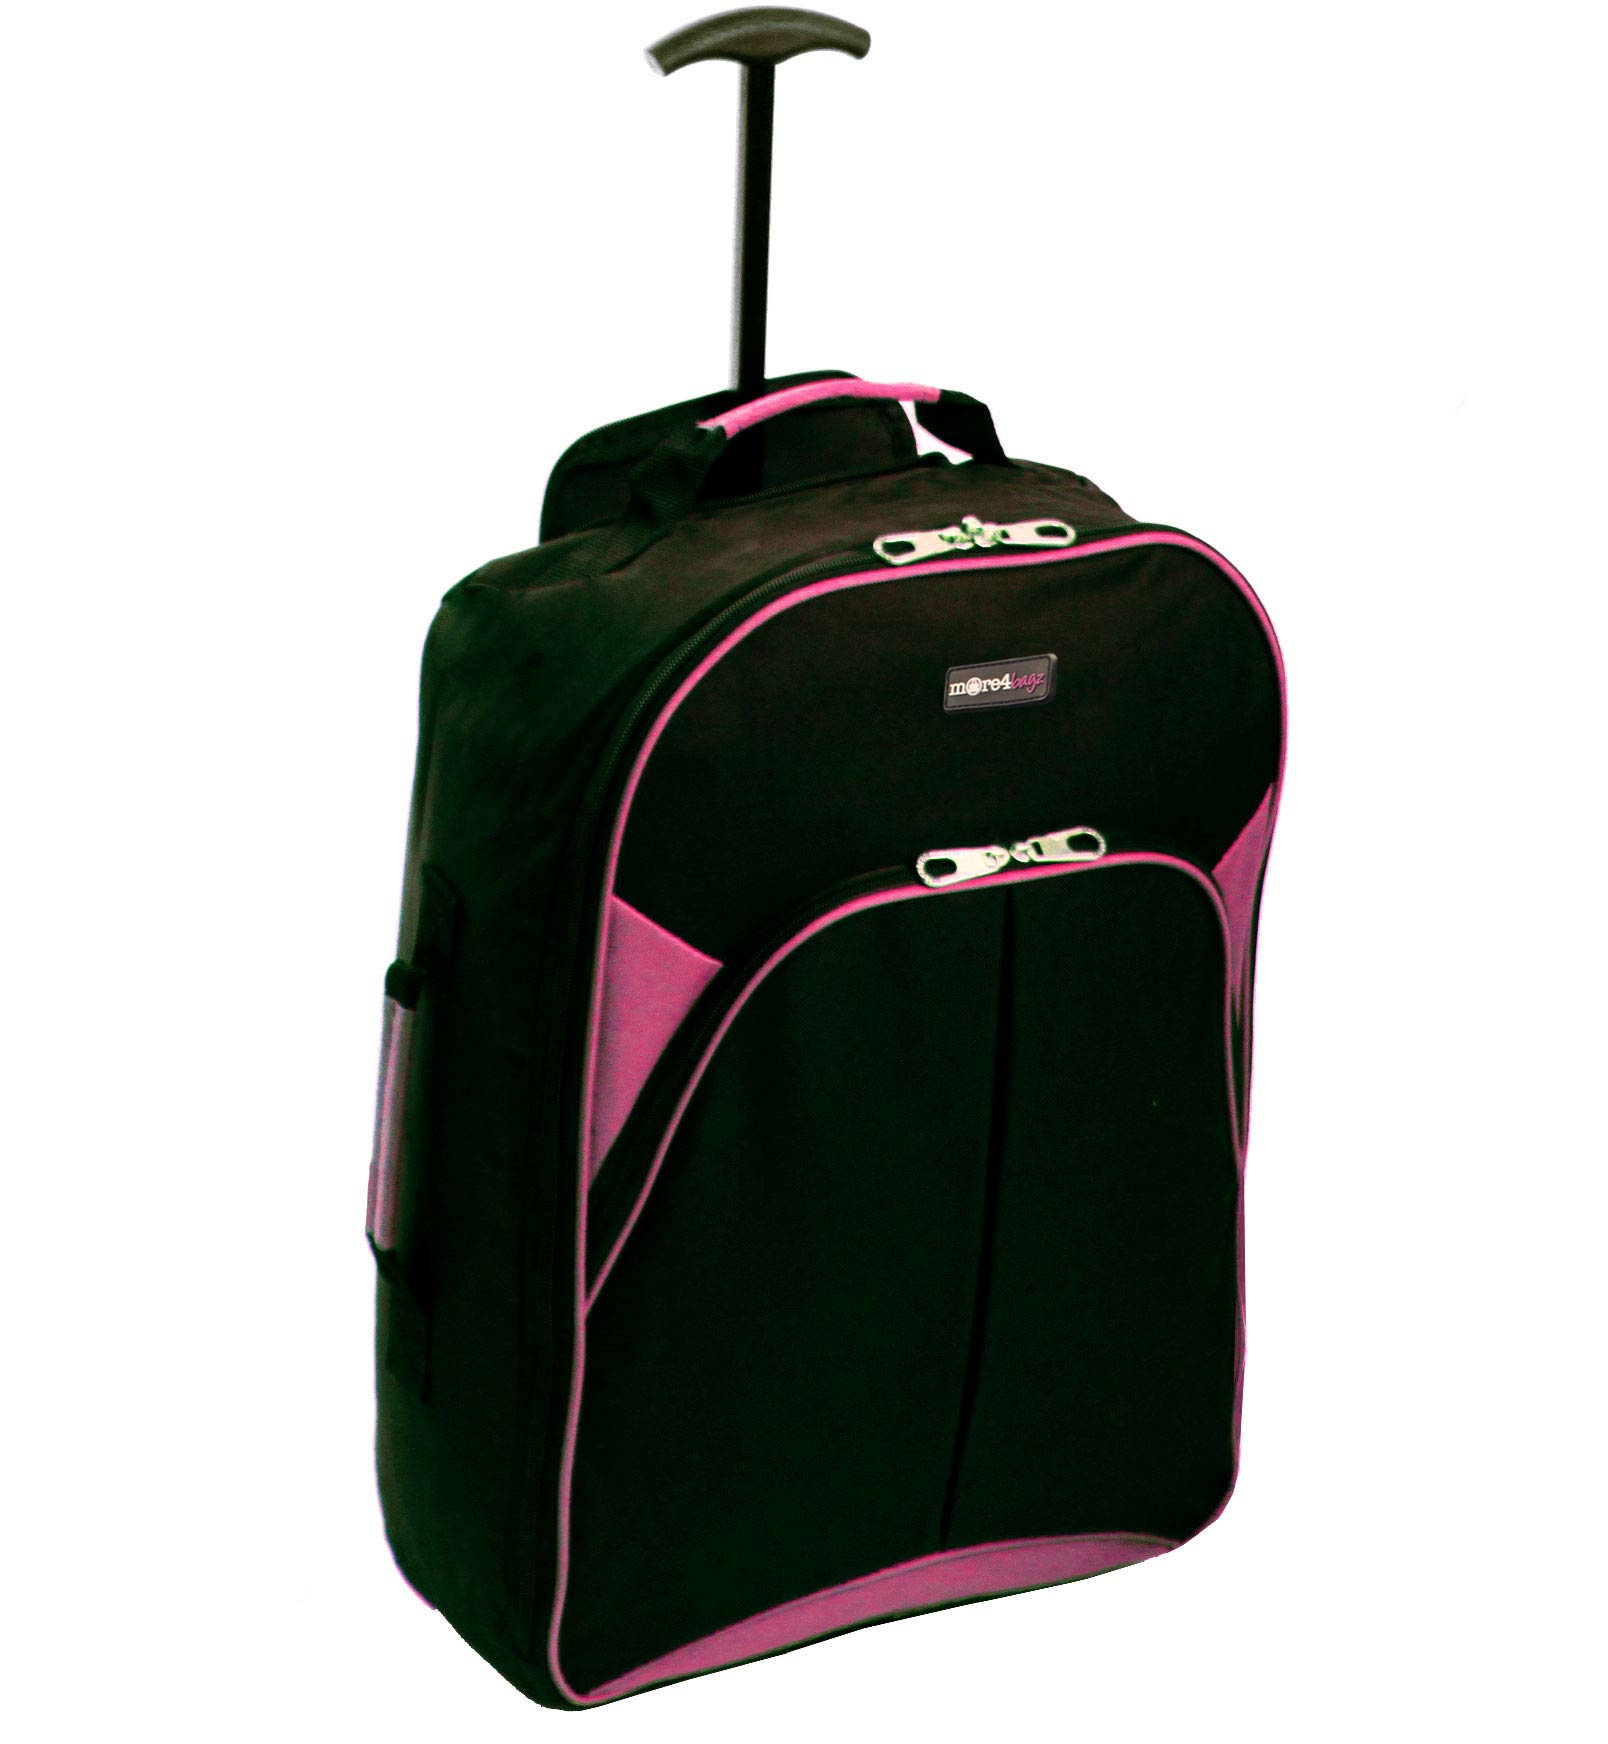 Cabin Hand Luggage Travel Holdall Bag Wheeled Suitcase ...